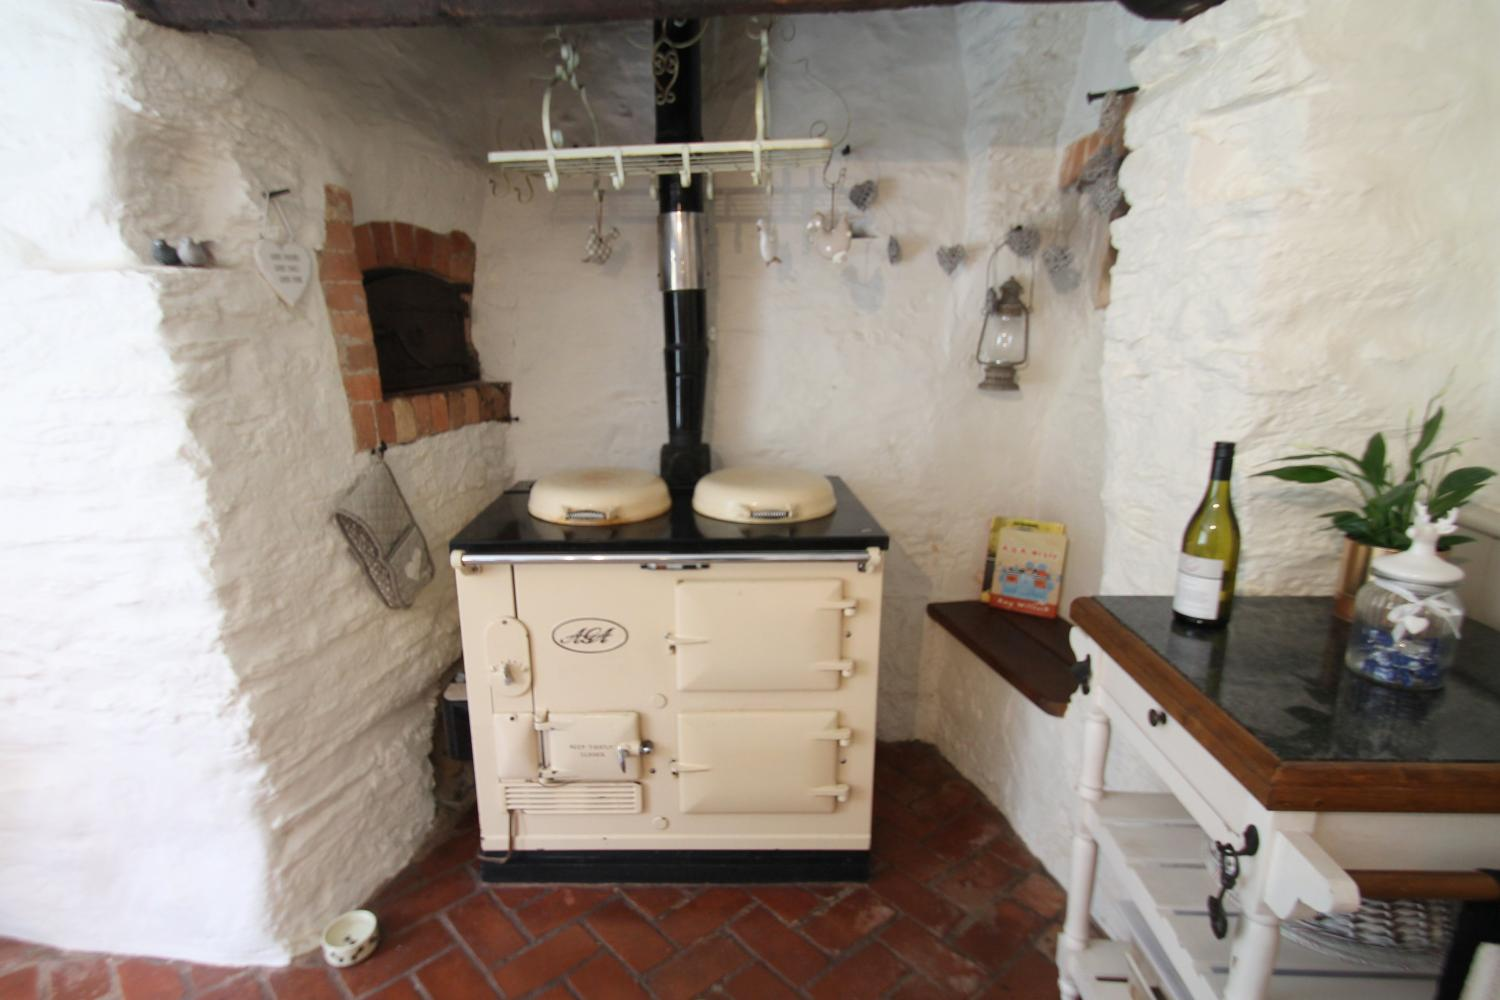 Easy cooking with the vintage oil fired Aga.